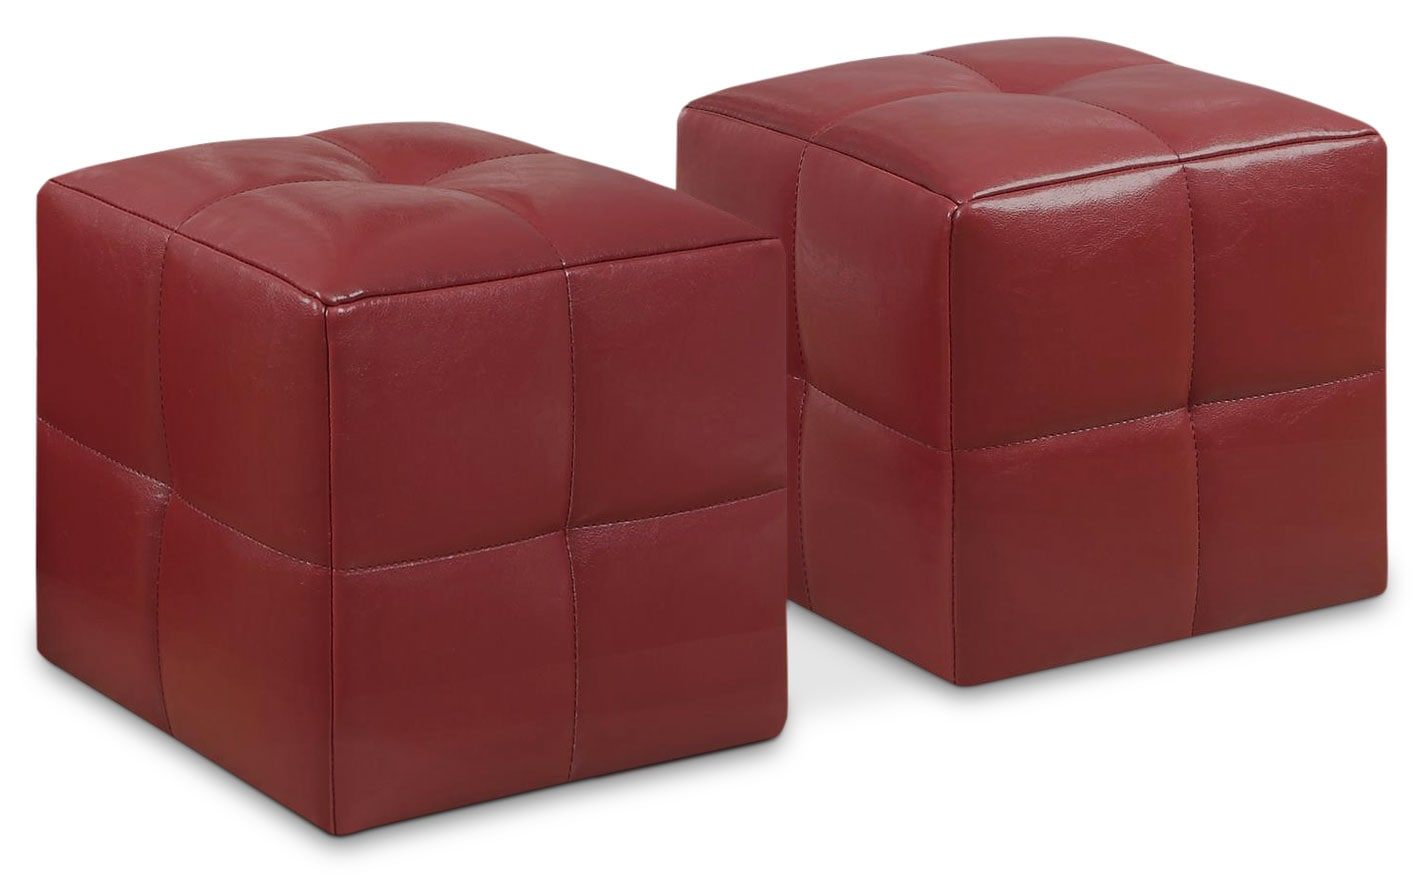 Mili 2-Piece Ottoman Set – Red